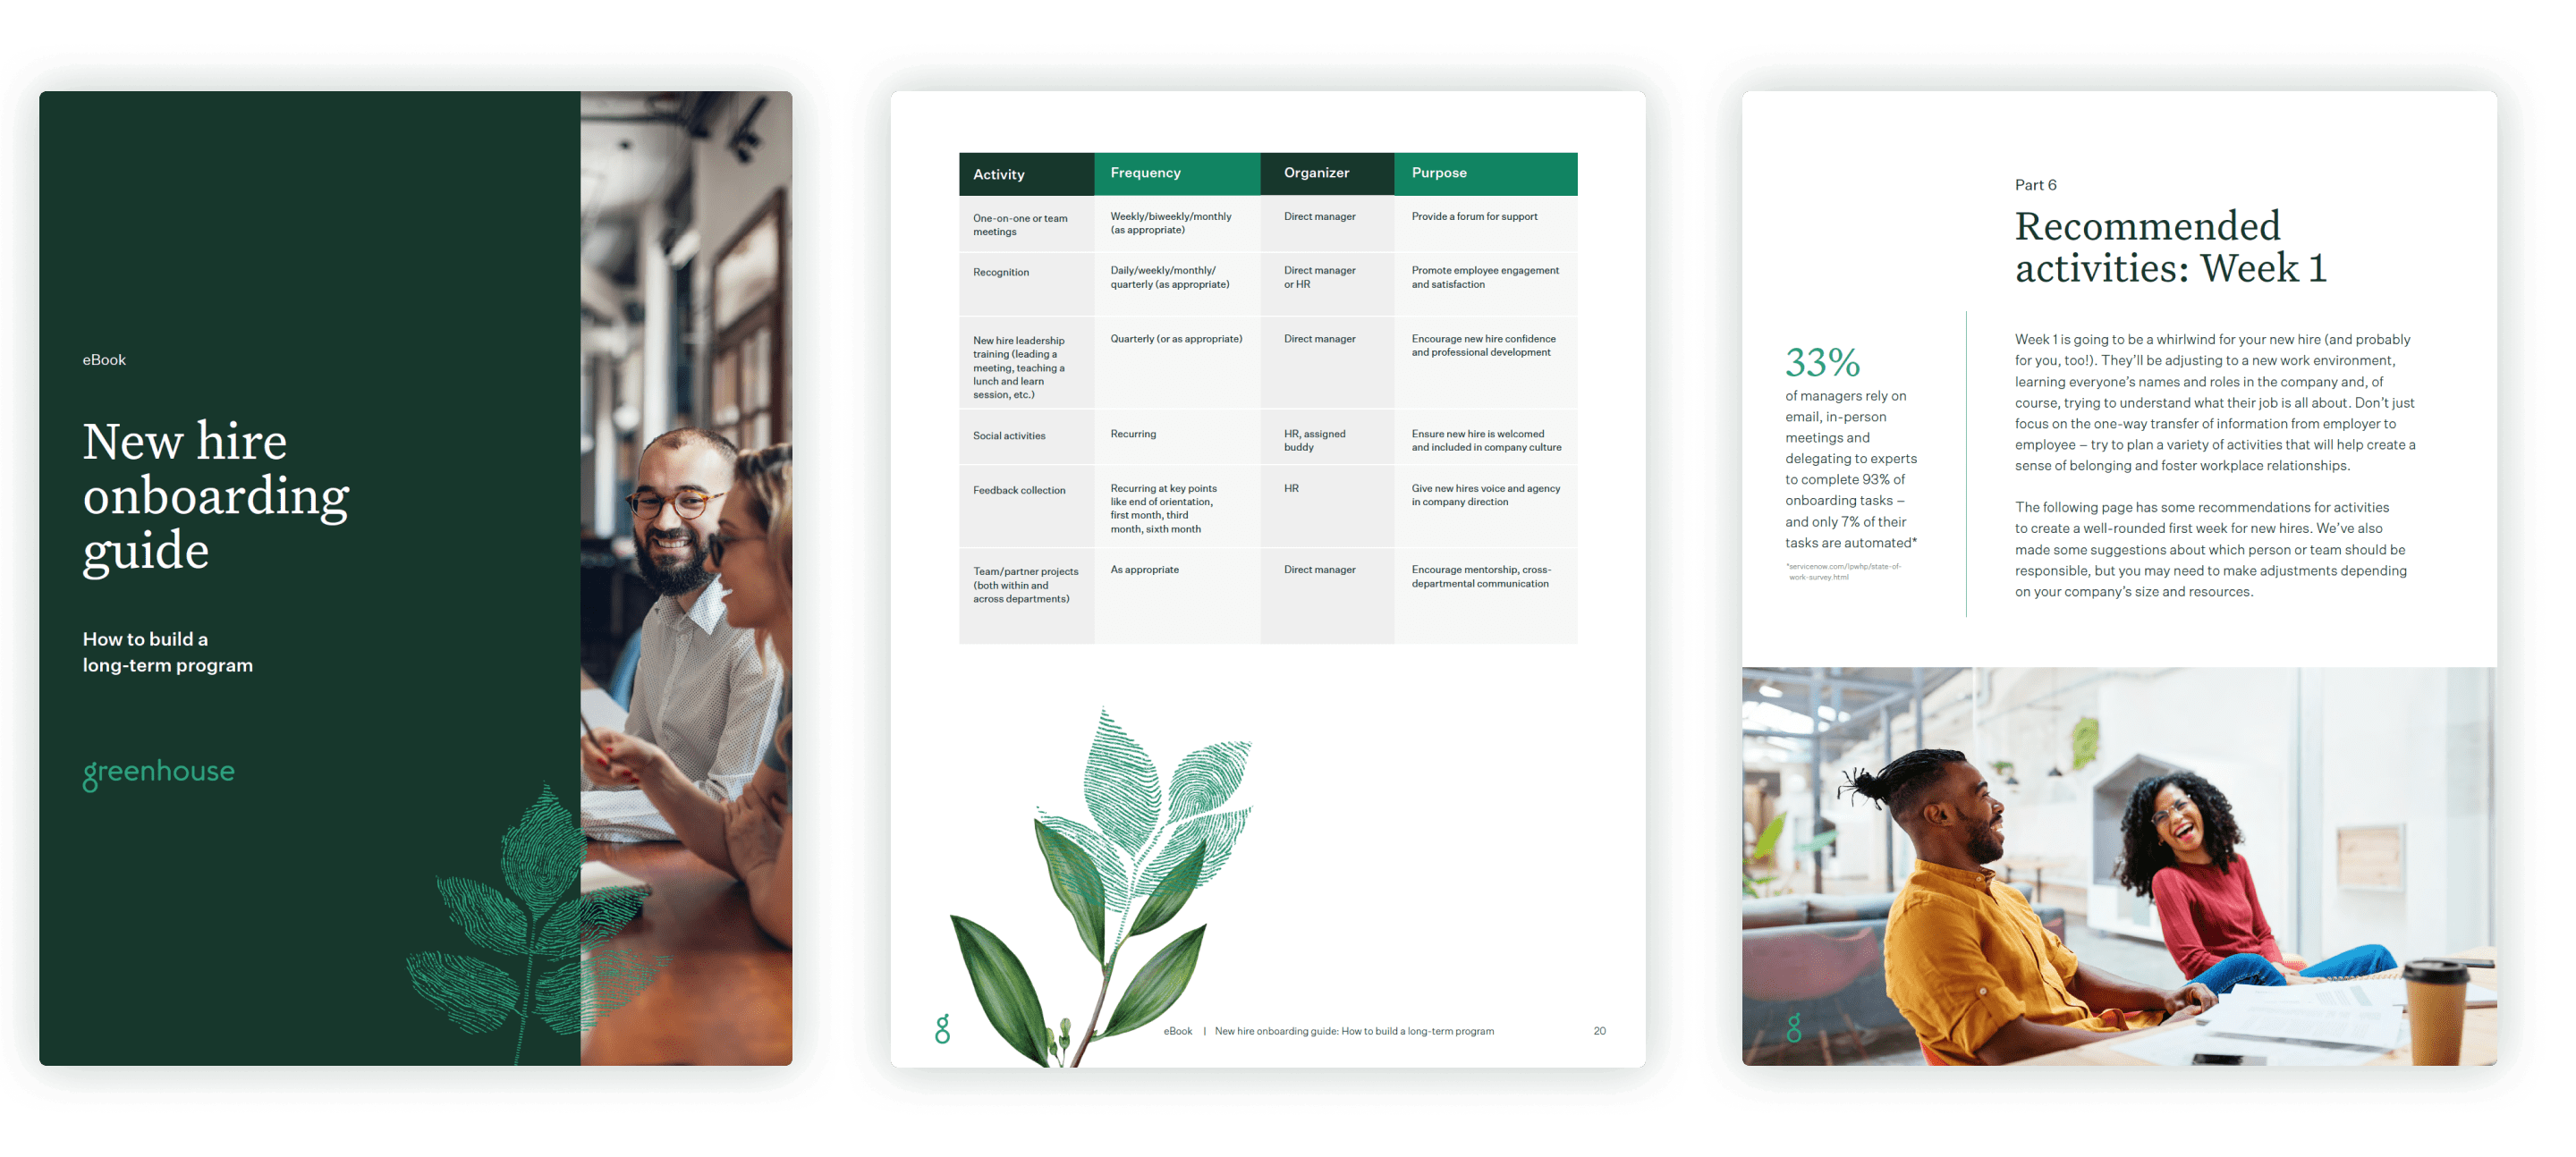 Sample pages of the new hire onboarding guide